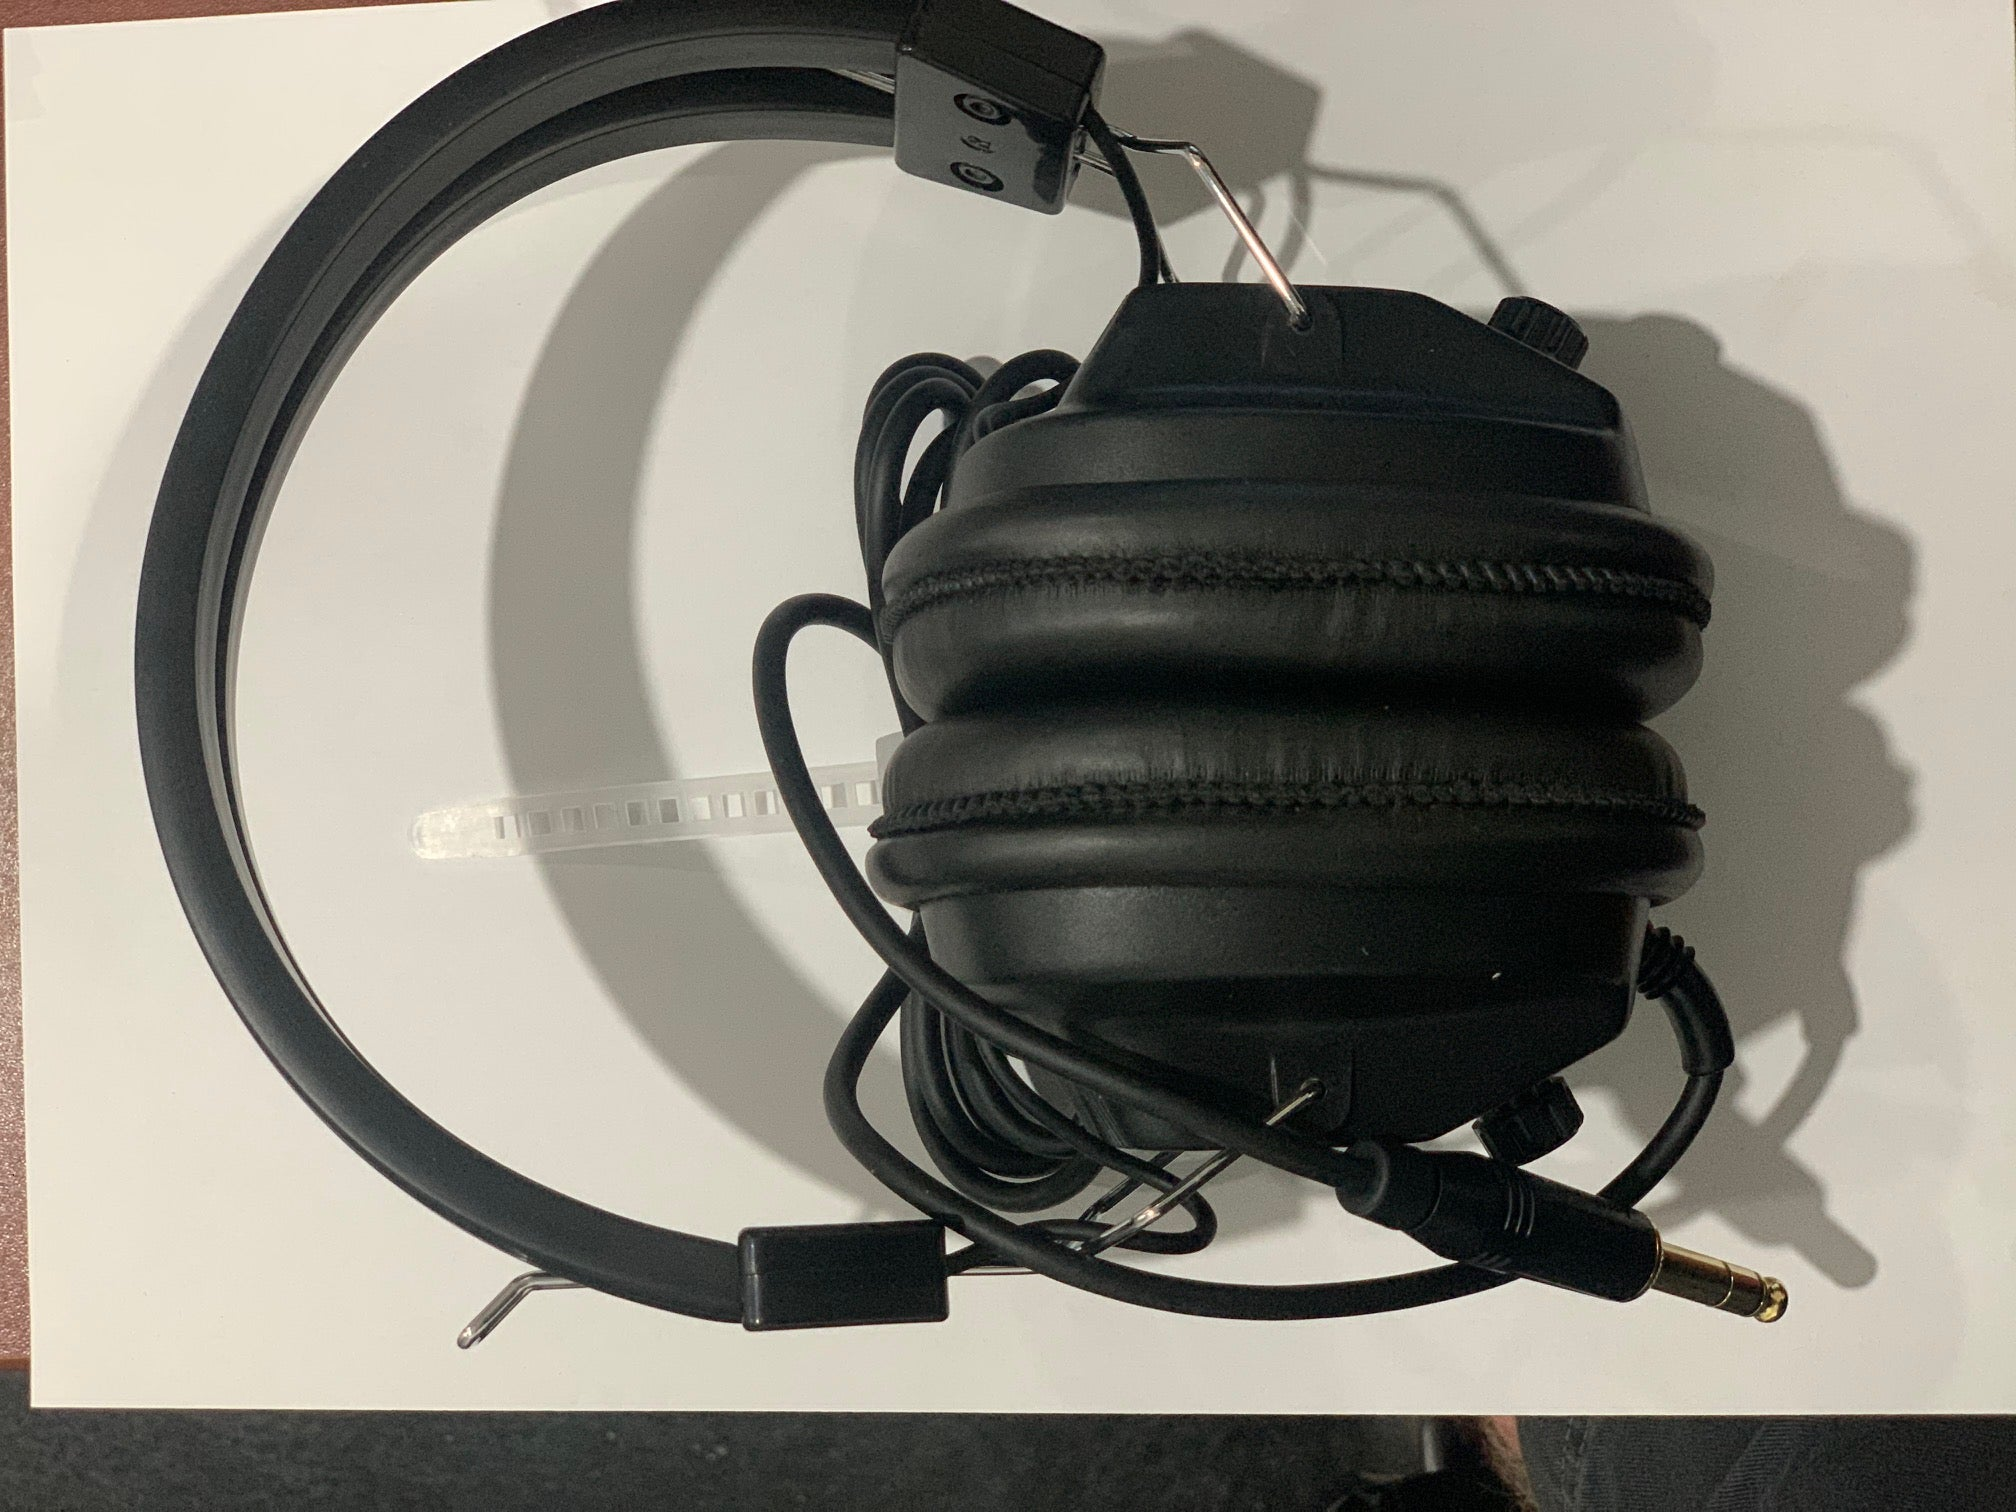 Headphones RPG Minelab 3011-0181